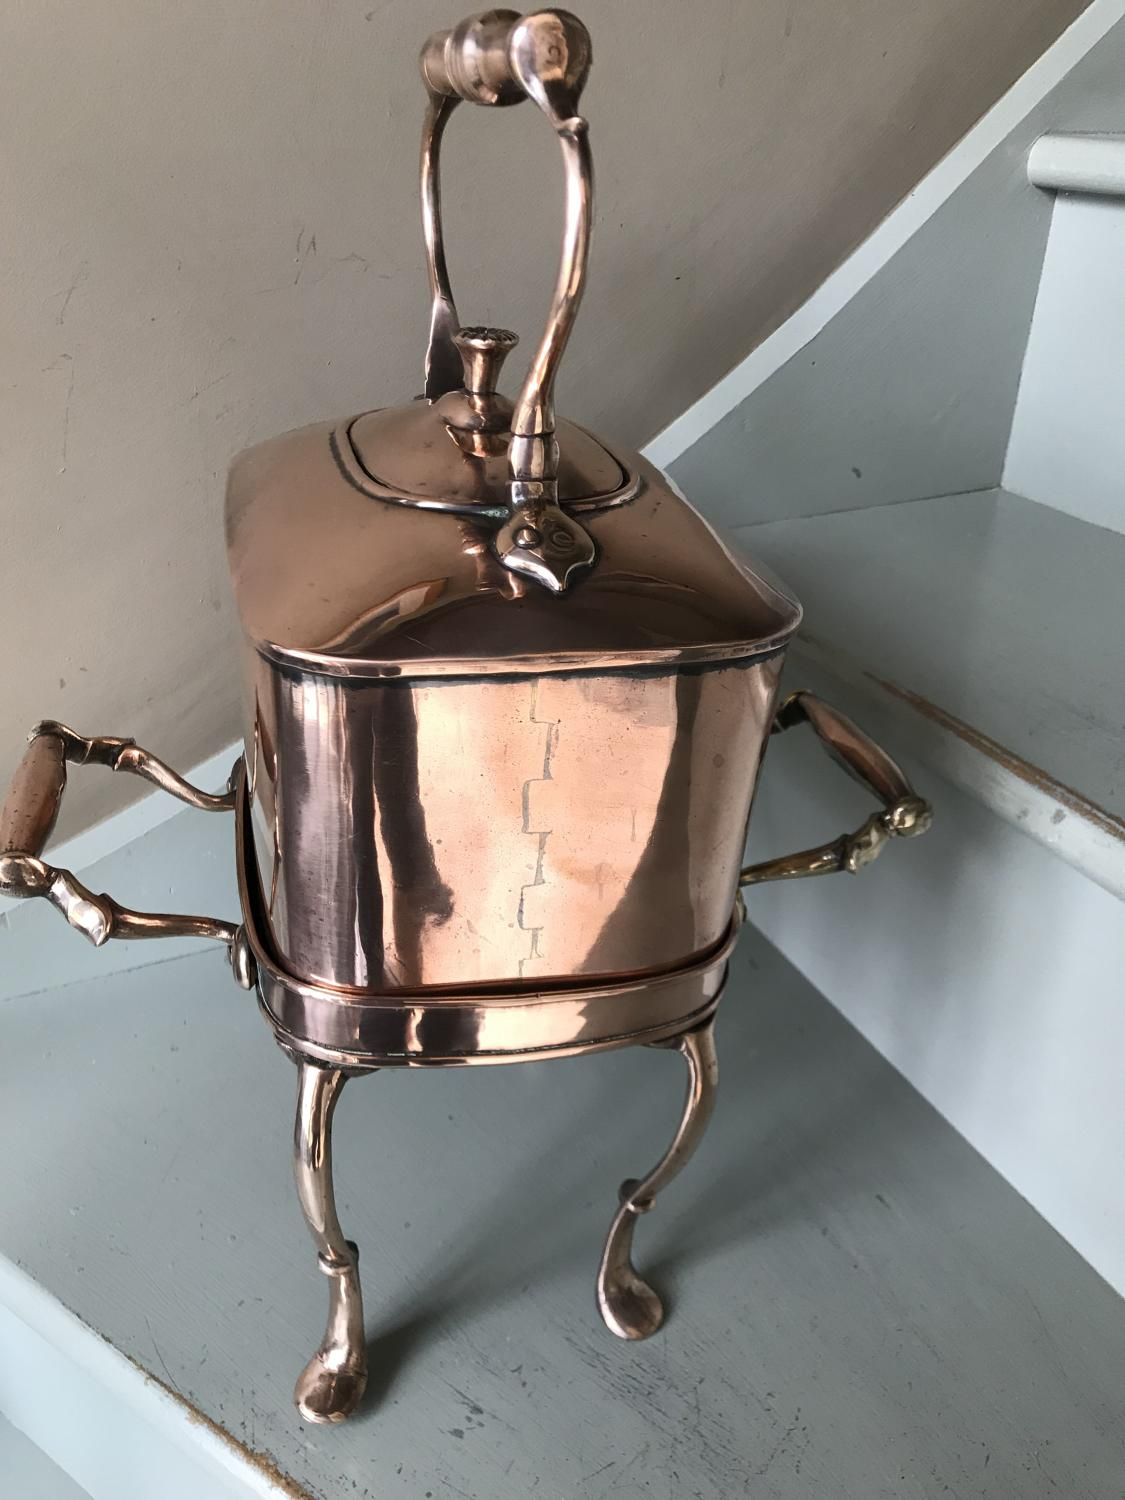 Rare design Victorian Copper Kettle on a Stand